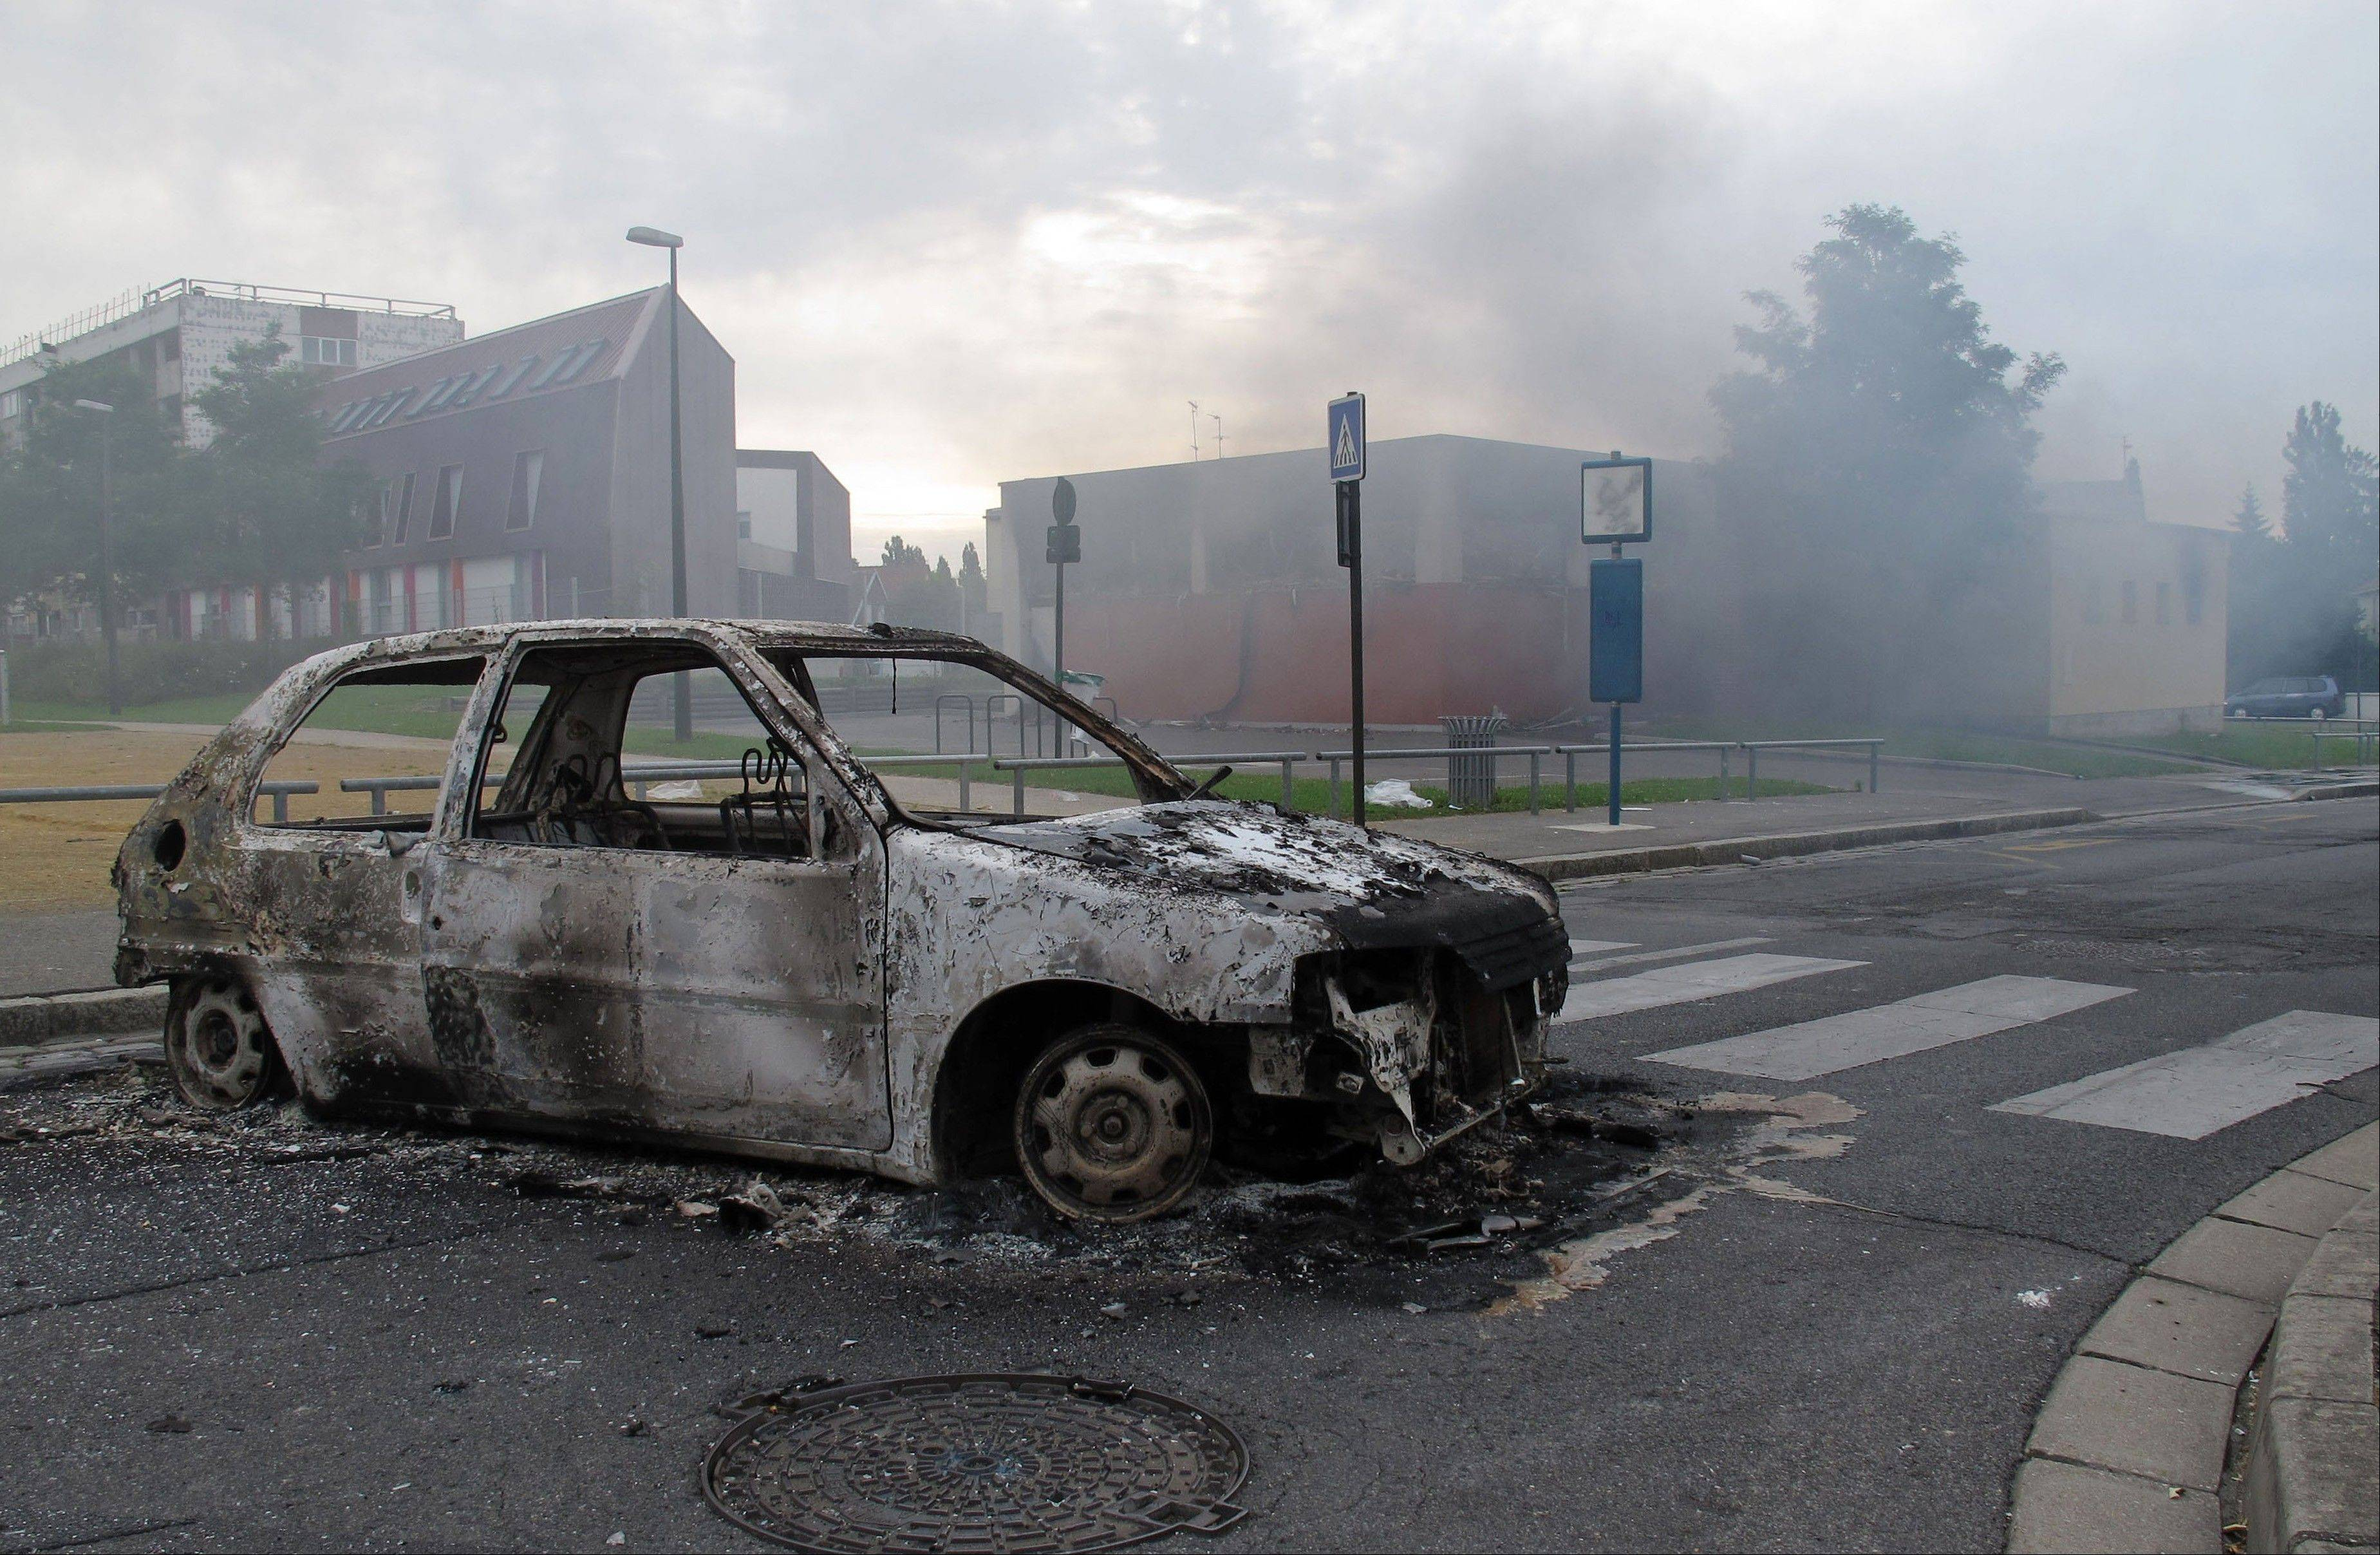 The shell of a burned out car is seen in a neighborhood of Amiens, France, Tuesday, Aug. 14, 2012. Dozens of young men rioted in a troubled district in northern France after weeks of tensions, pulling drivers from their cars and stealing the vehicles, and burning a school and a youth center. The police department in Amiens says at least 16 officers were hurt by the time the riot ended Tuesday, some by buckshot.